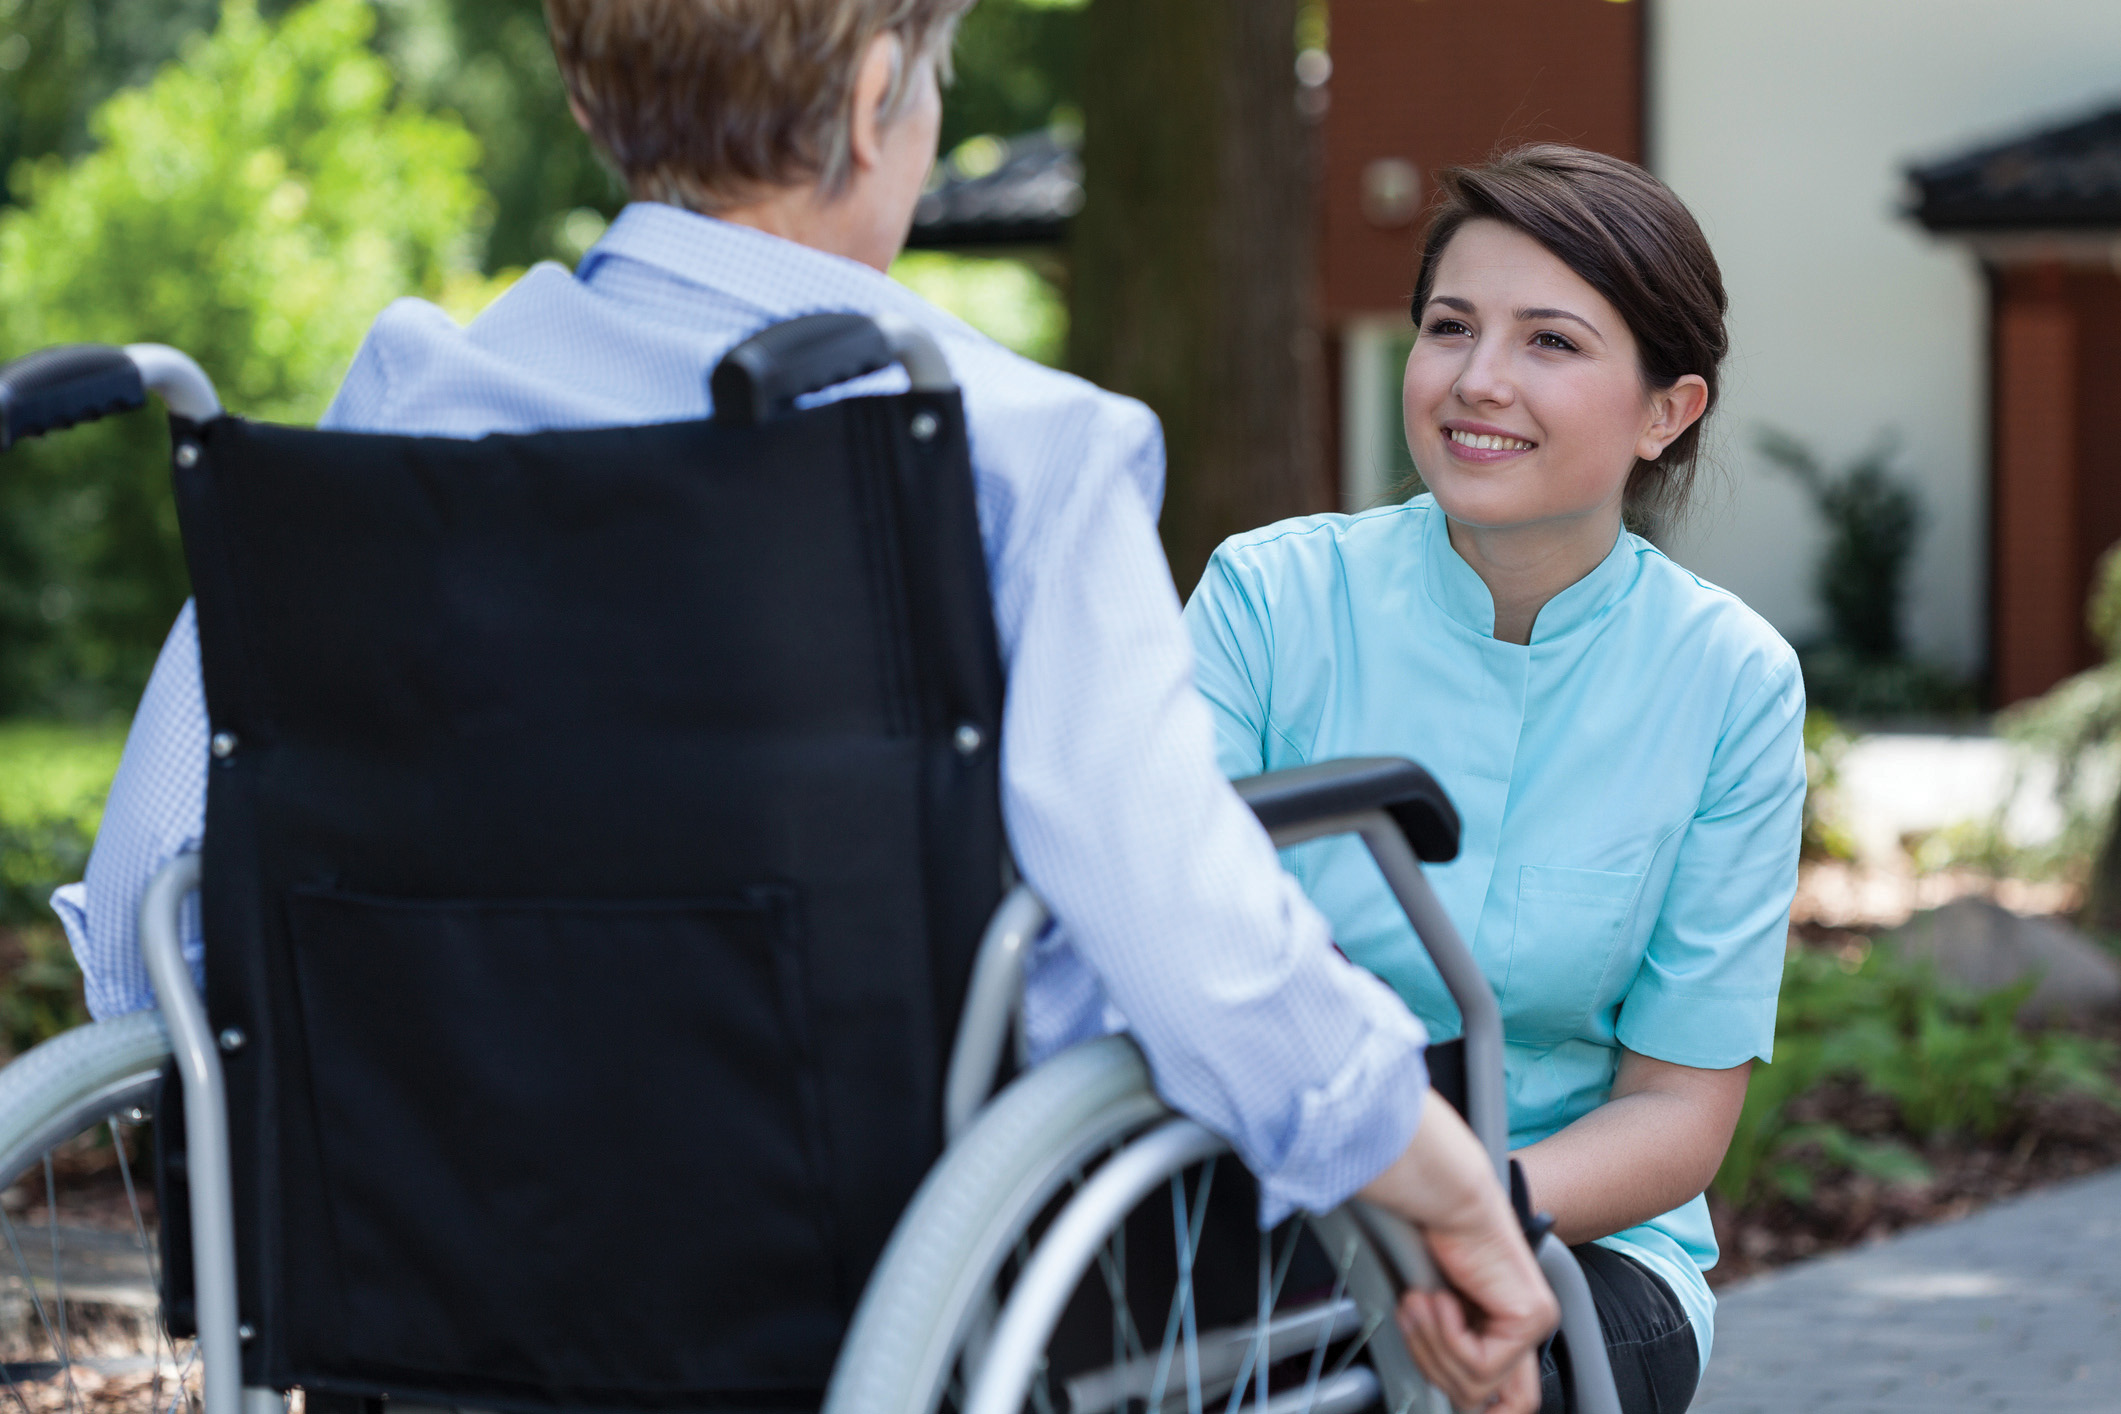 Nurse in lab coat smiles to the woman in the wheelchair